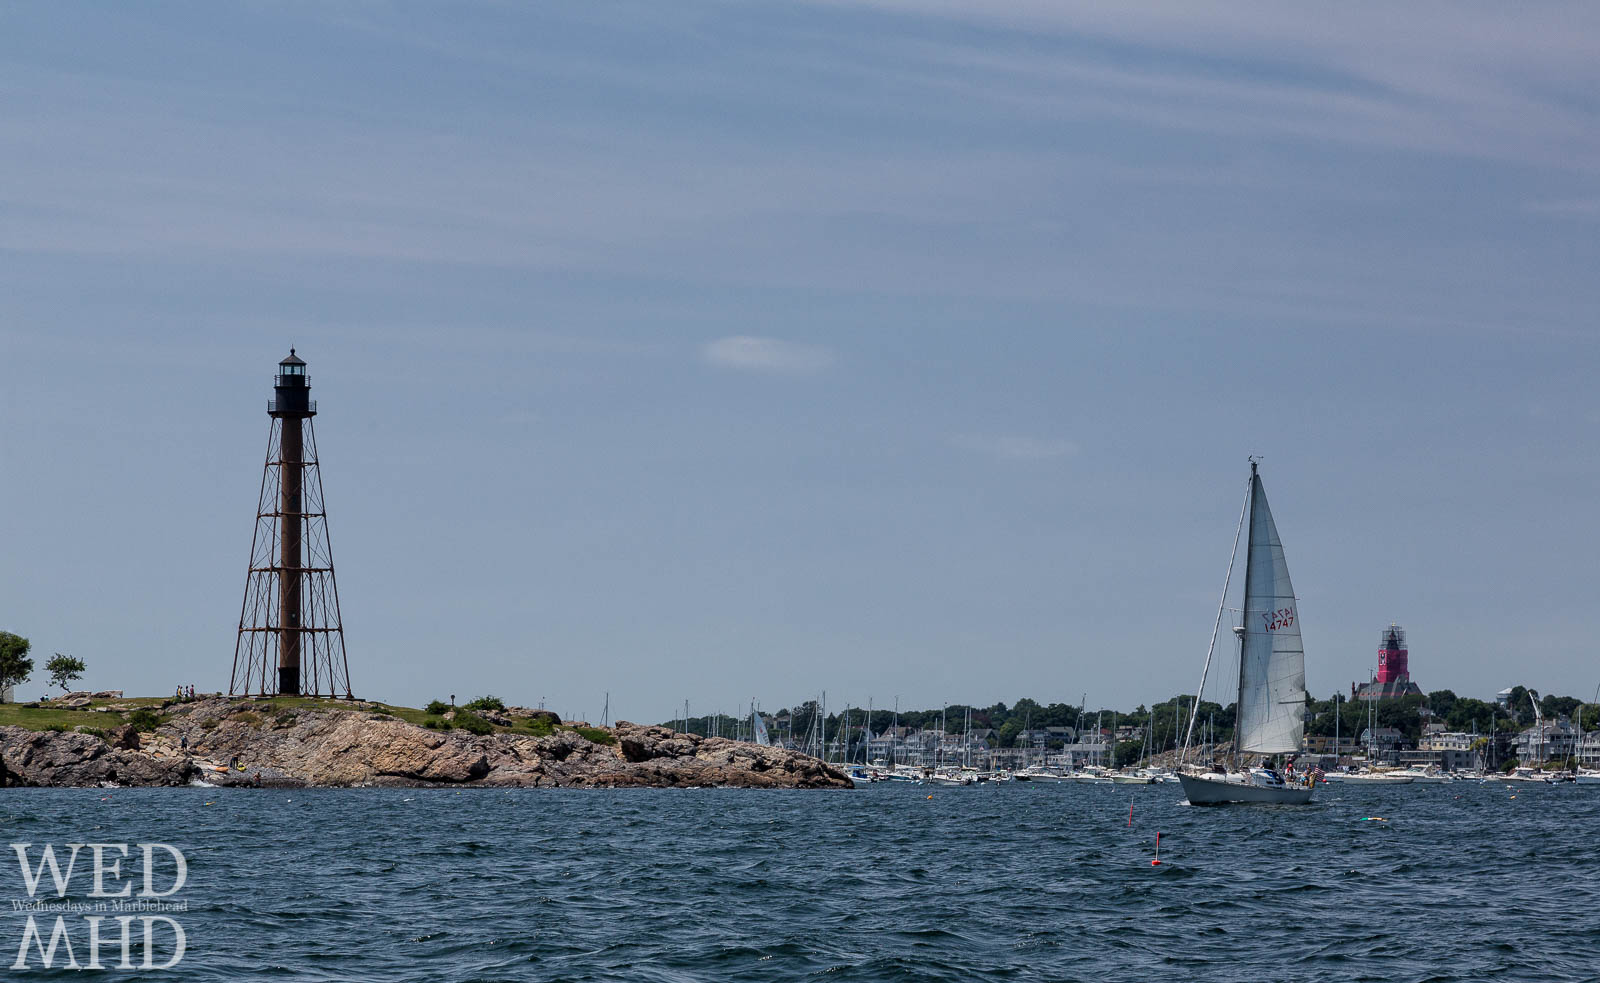 Sailing Out of Marblehead Harbor